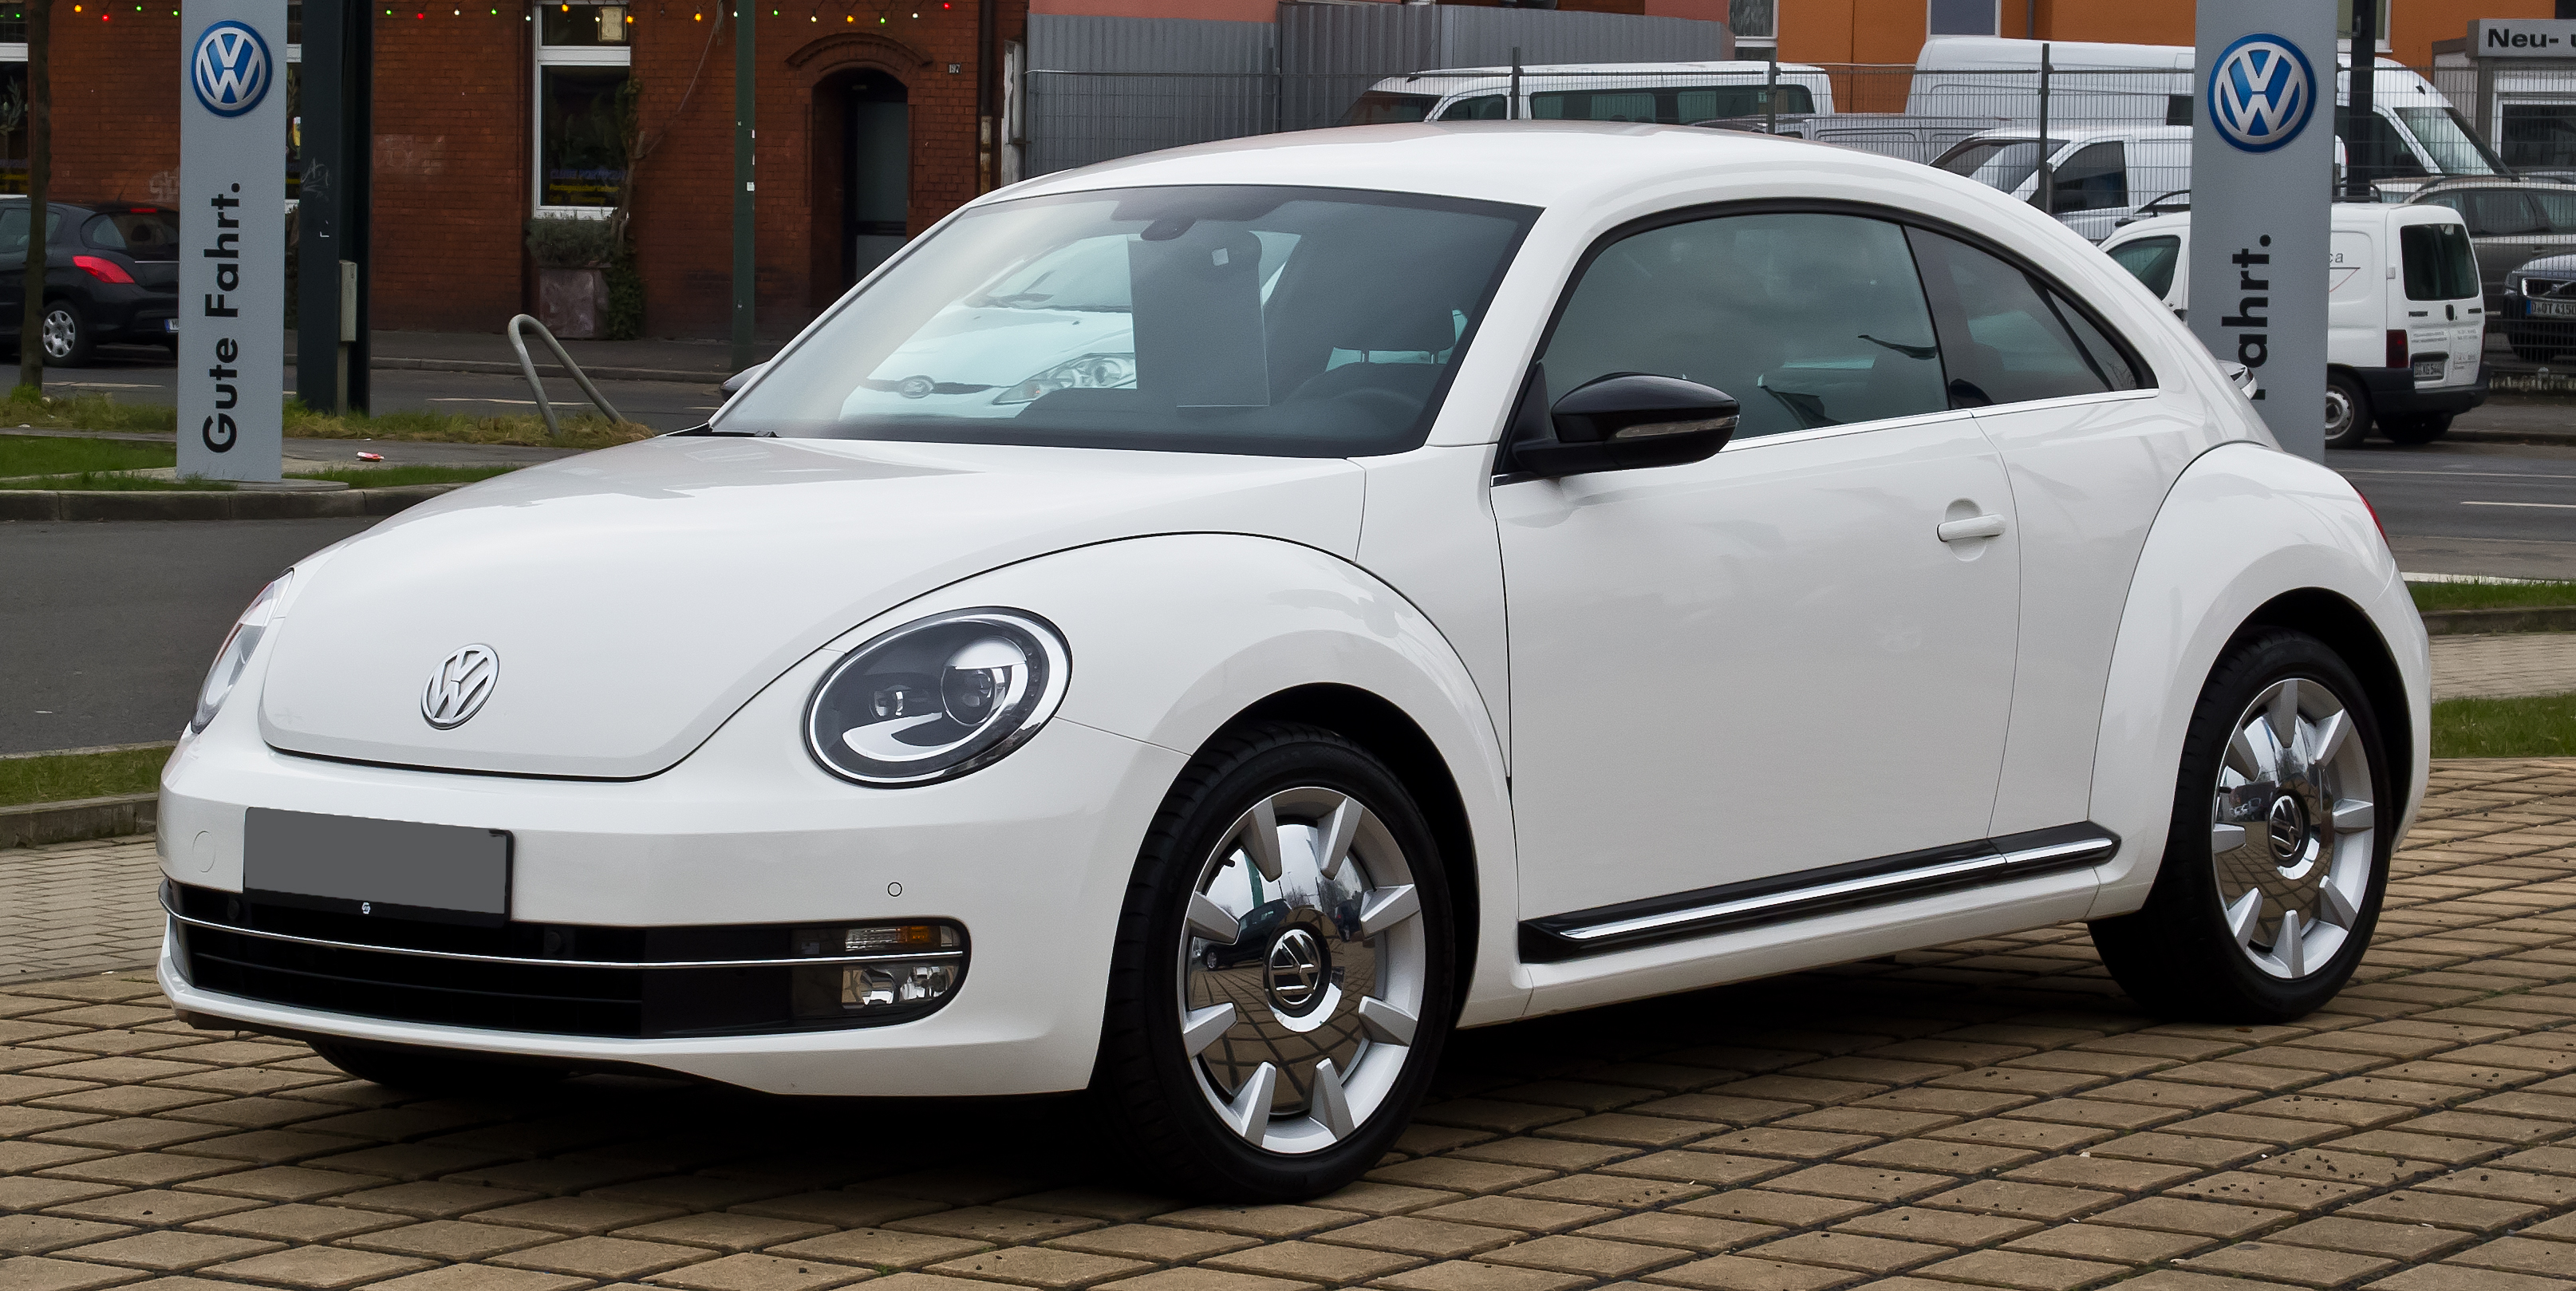 file vw beetle 1 4 tsi sport frontansicht 3 m rz 2013 d wikimedia commons. Black Bedroom Furniture Sets. Home Design Ideas